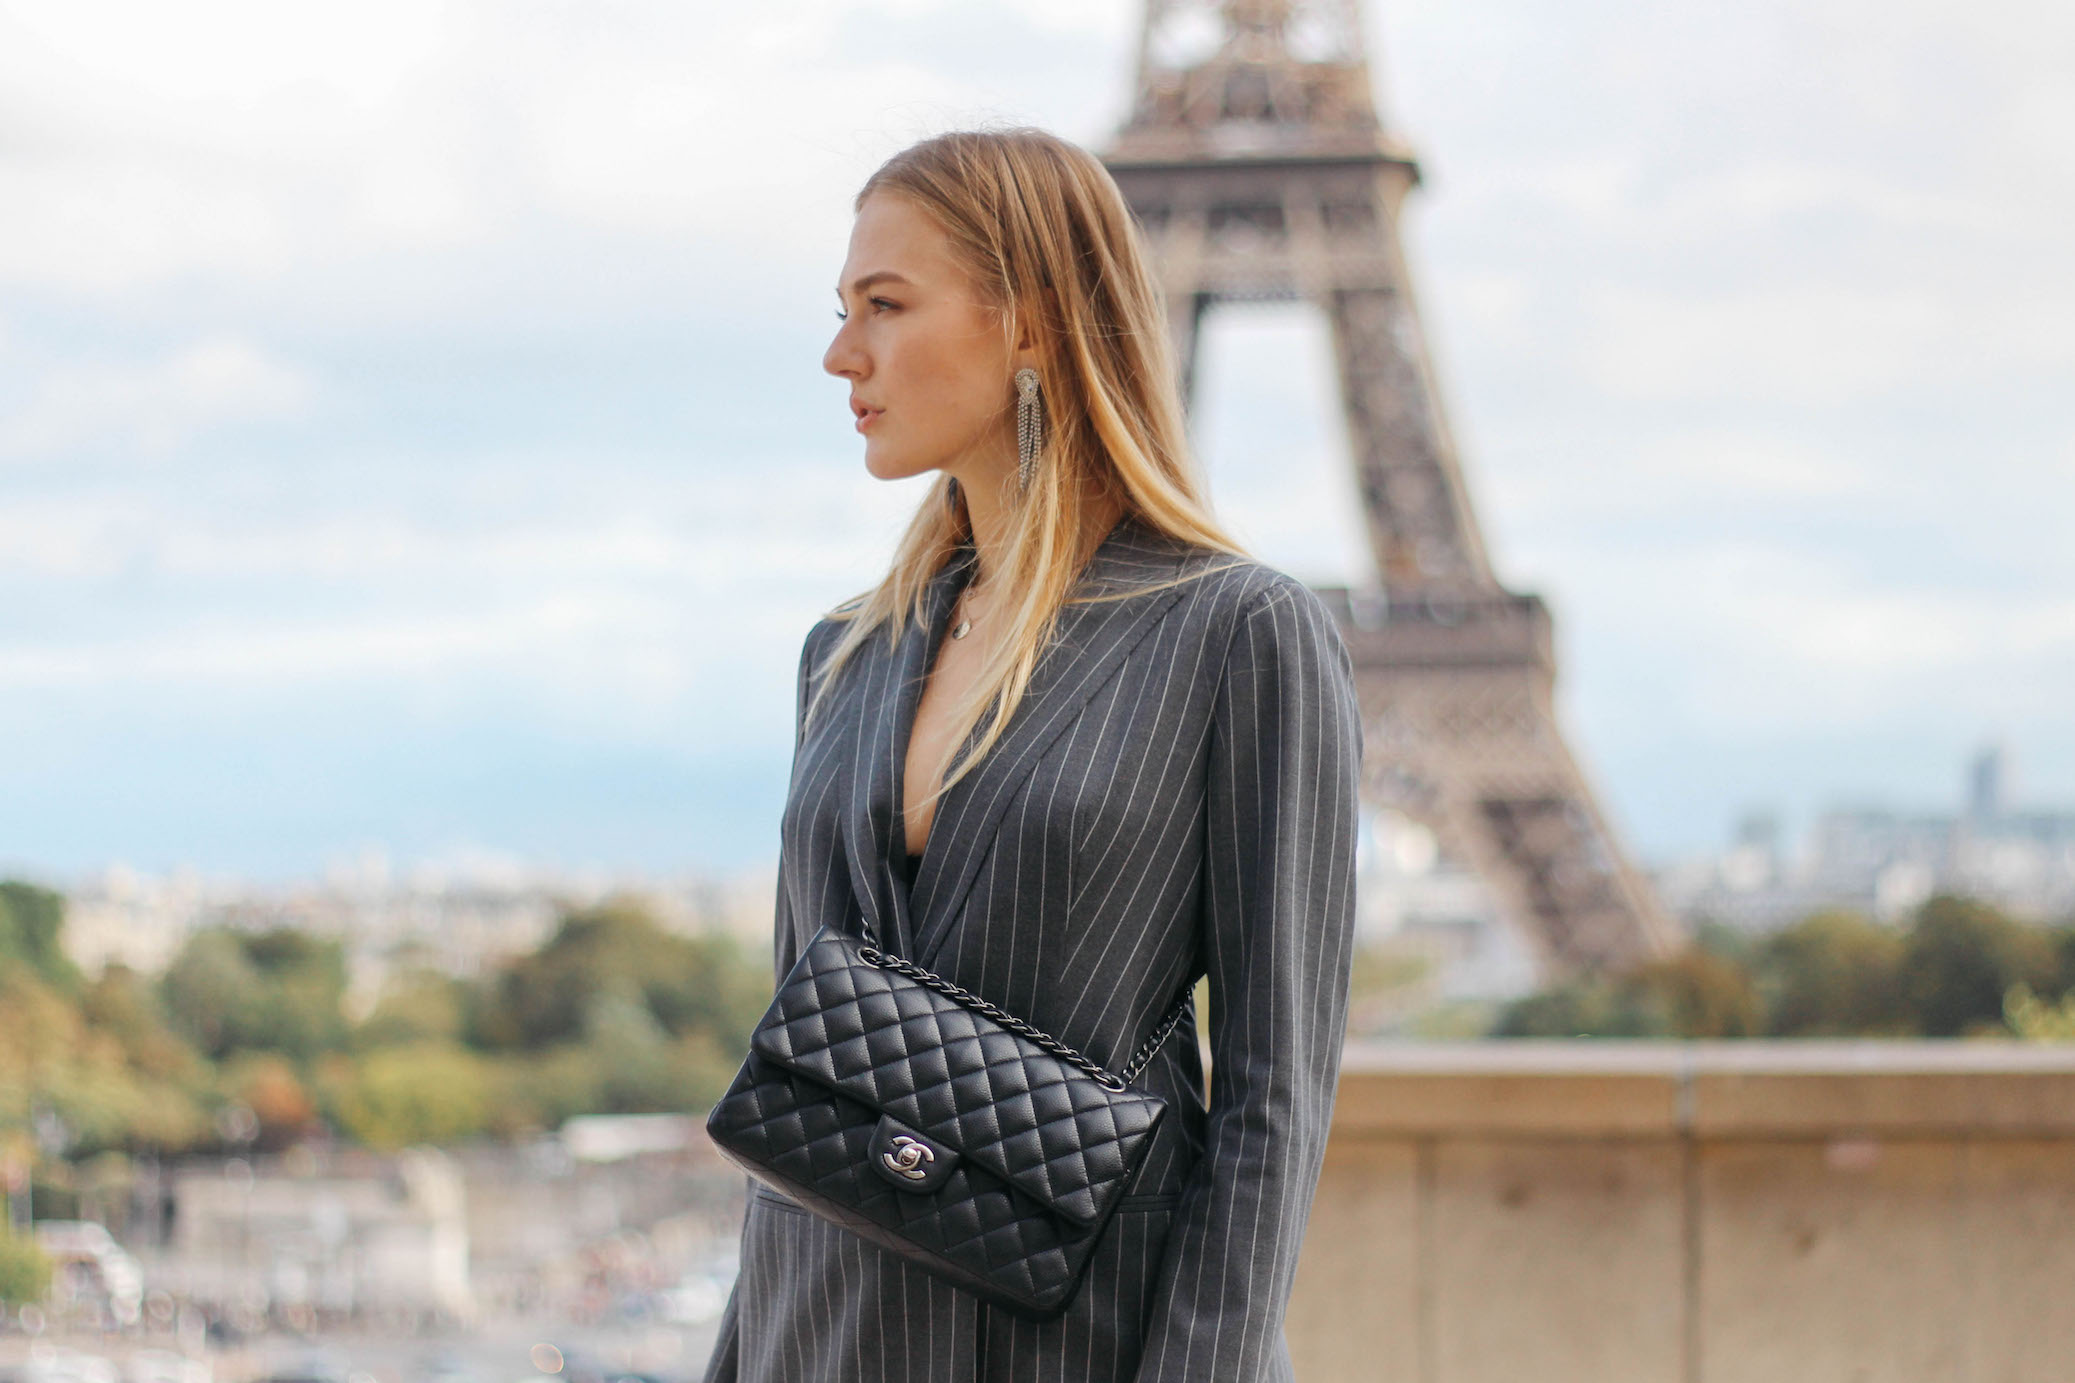 Floortjeloves, pfw, paris, Paris fashion week, Paris fashionweek, fashion week, fashionweek, Louis Vuitton, Louis Vuitton boots, suistudio, suit, chanel, chanel bag, chanel classic, Eiffel Tower, chanel bag, rosegal